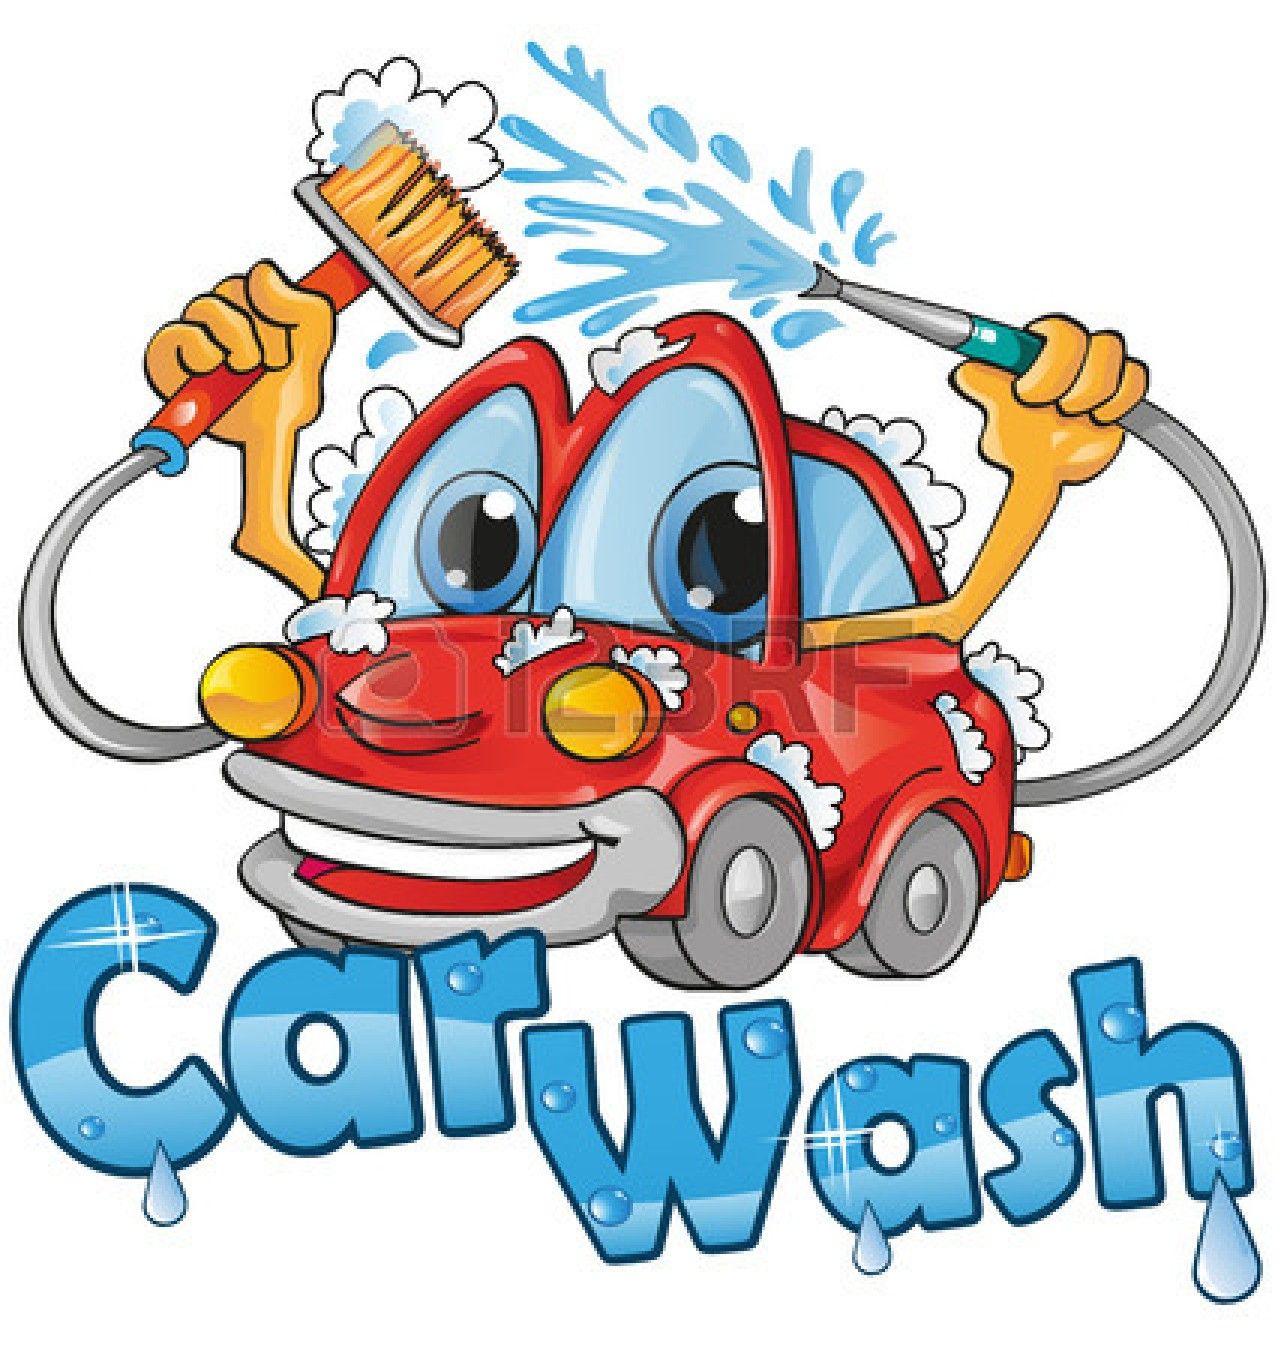 Cartoon Car Car Wash Service Cartoon Car Pictures Car Wash Service